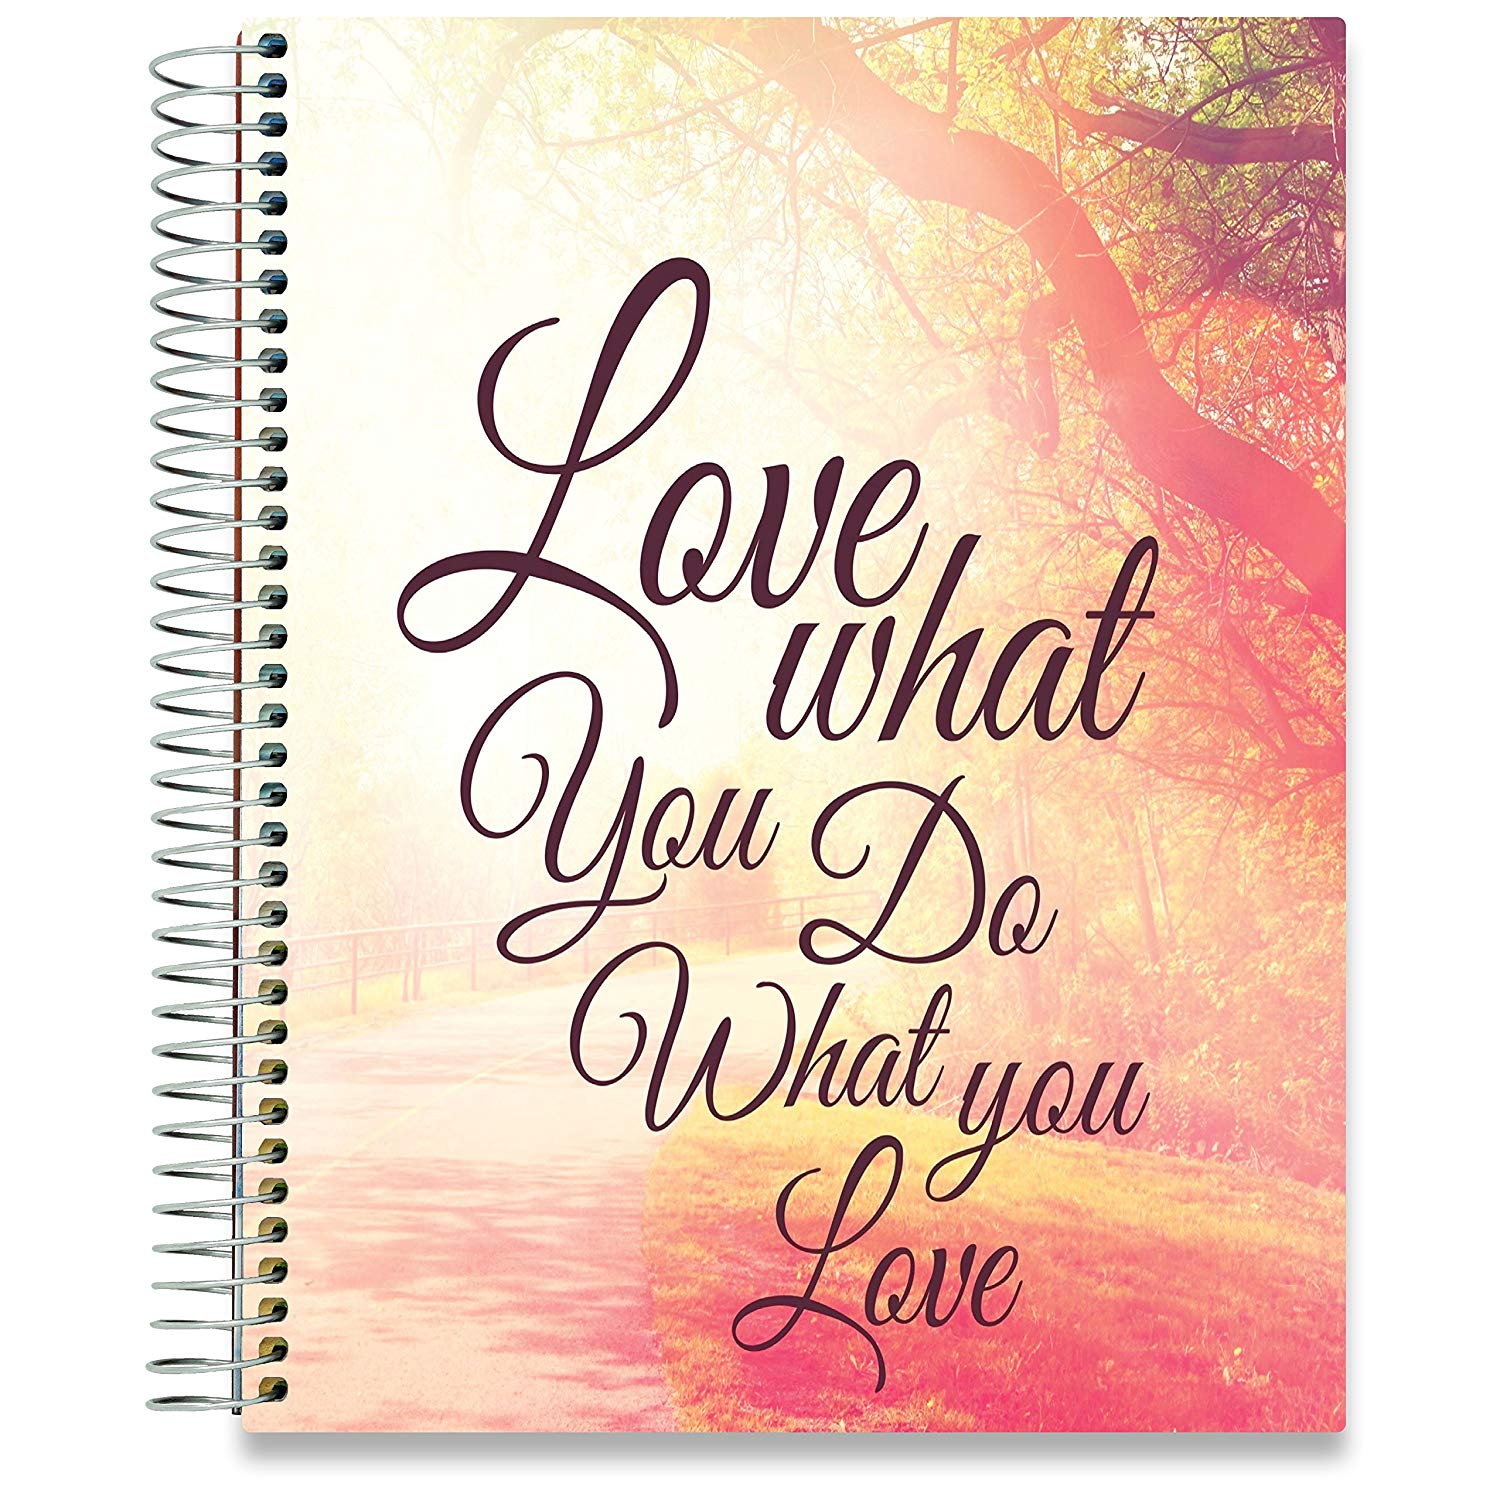 NEW: April 2020-2021 Planner - 8.5x11 - Walden Love-Office Product-Tools4Wisdom